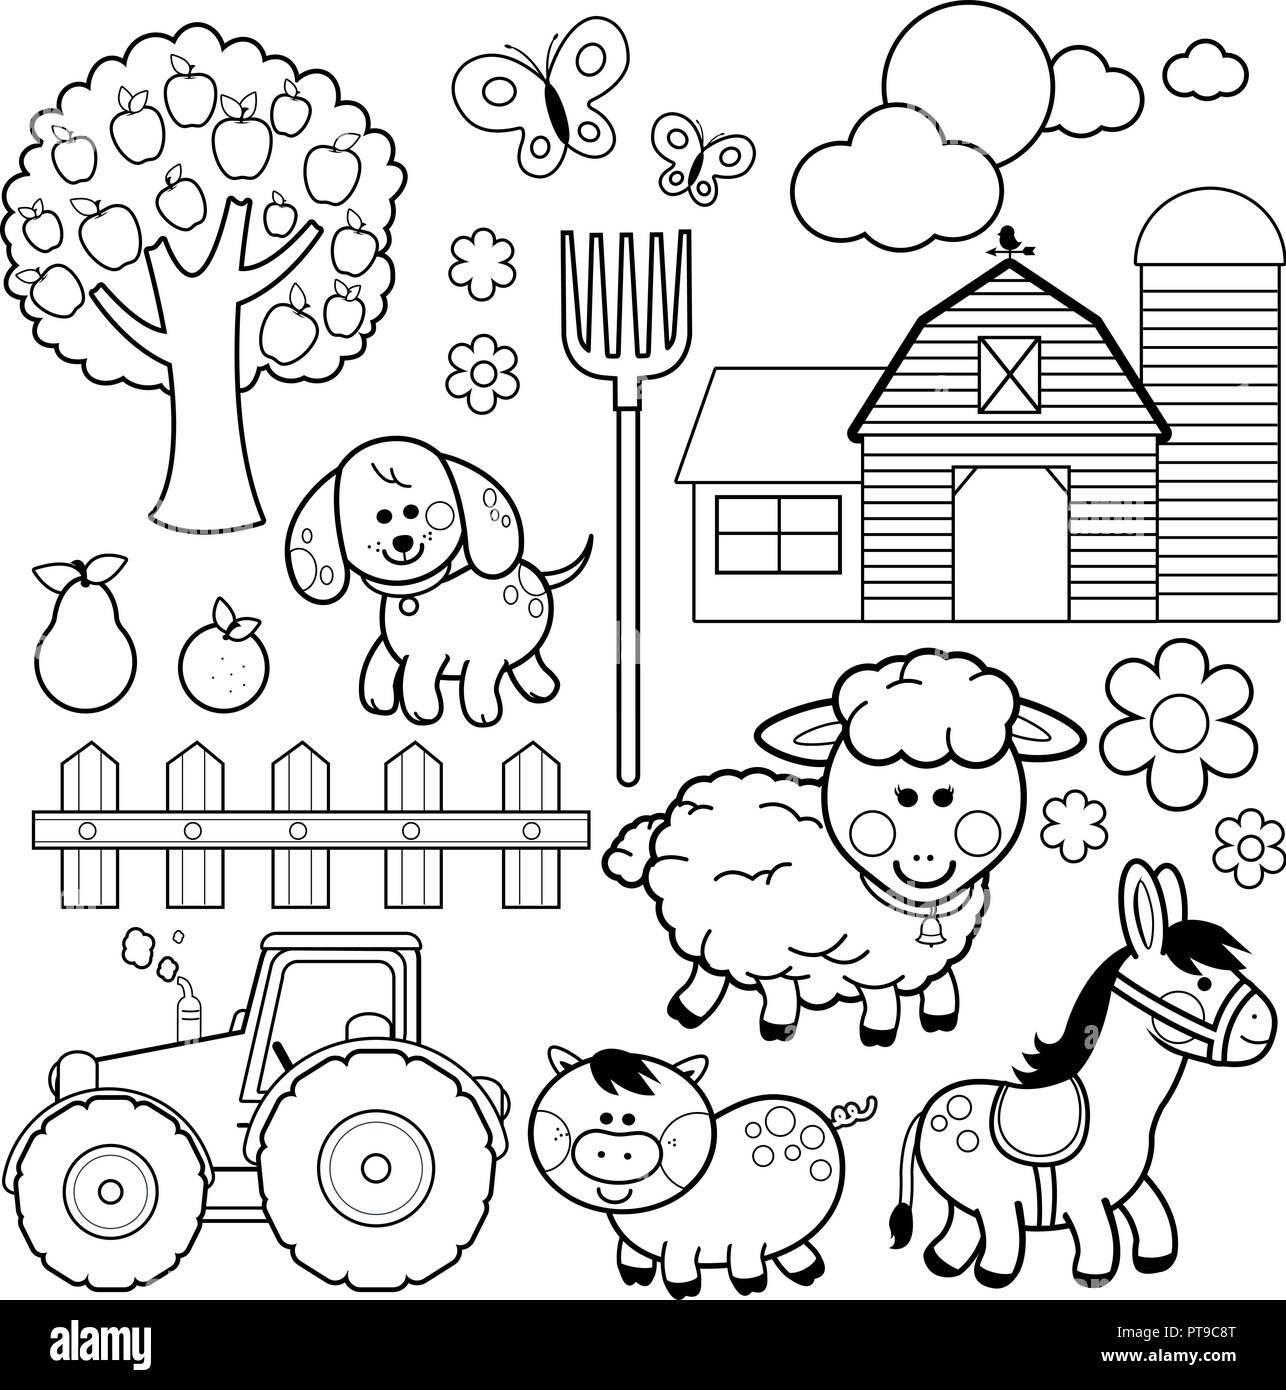 Cartoon safari animals coloring page Royalty Free Vector | 1390x1286